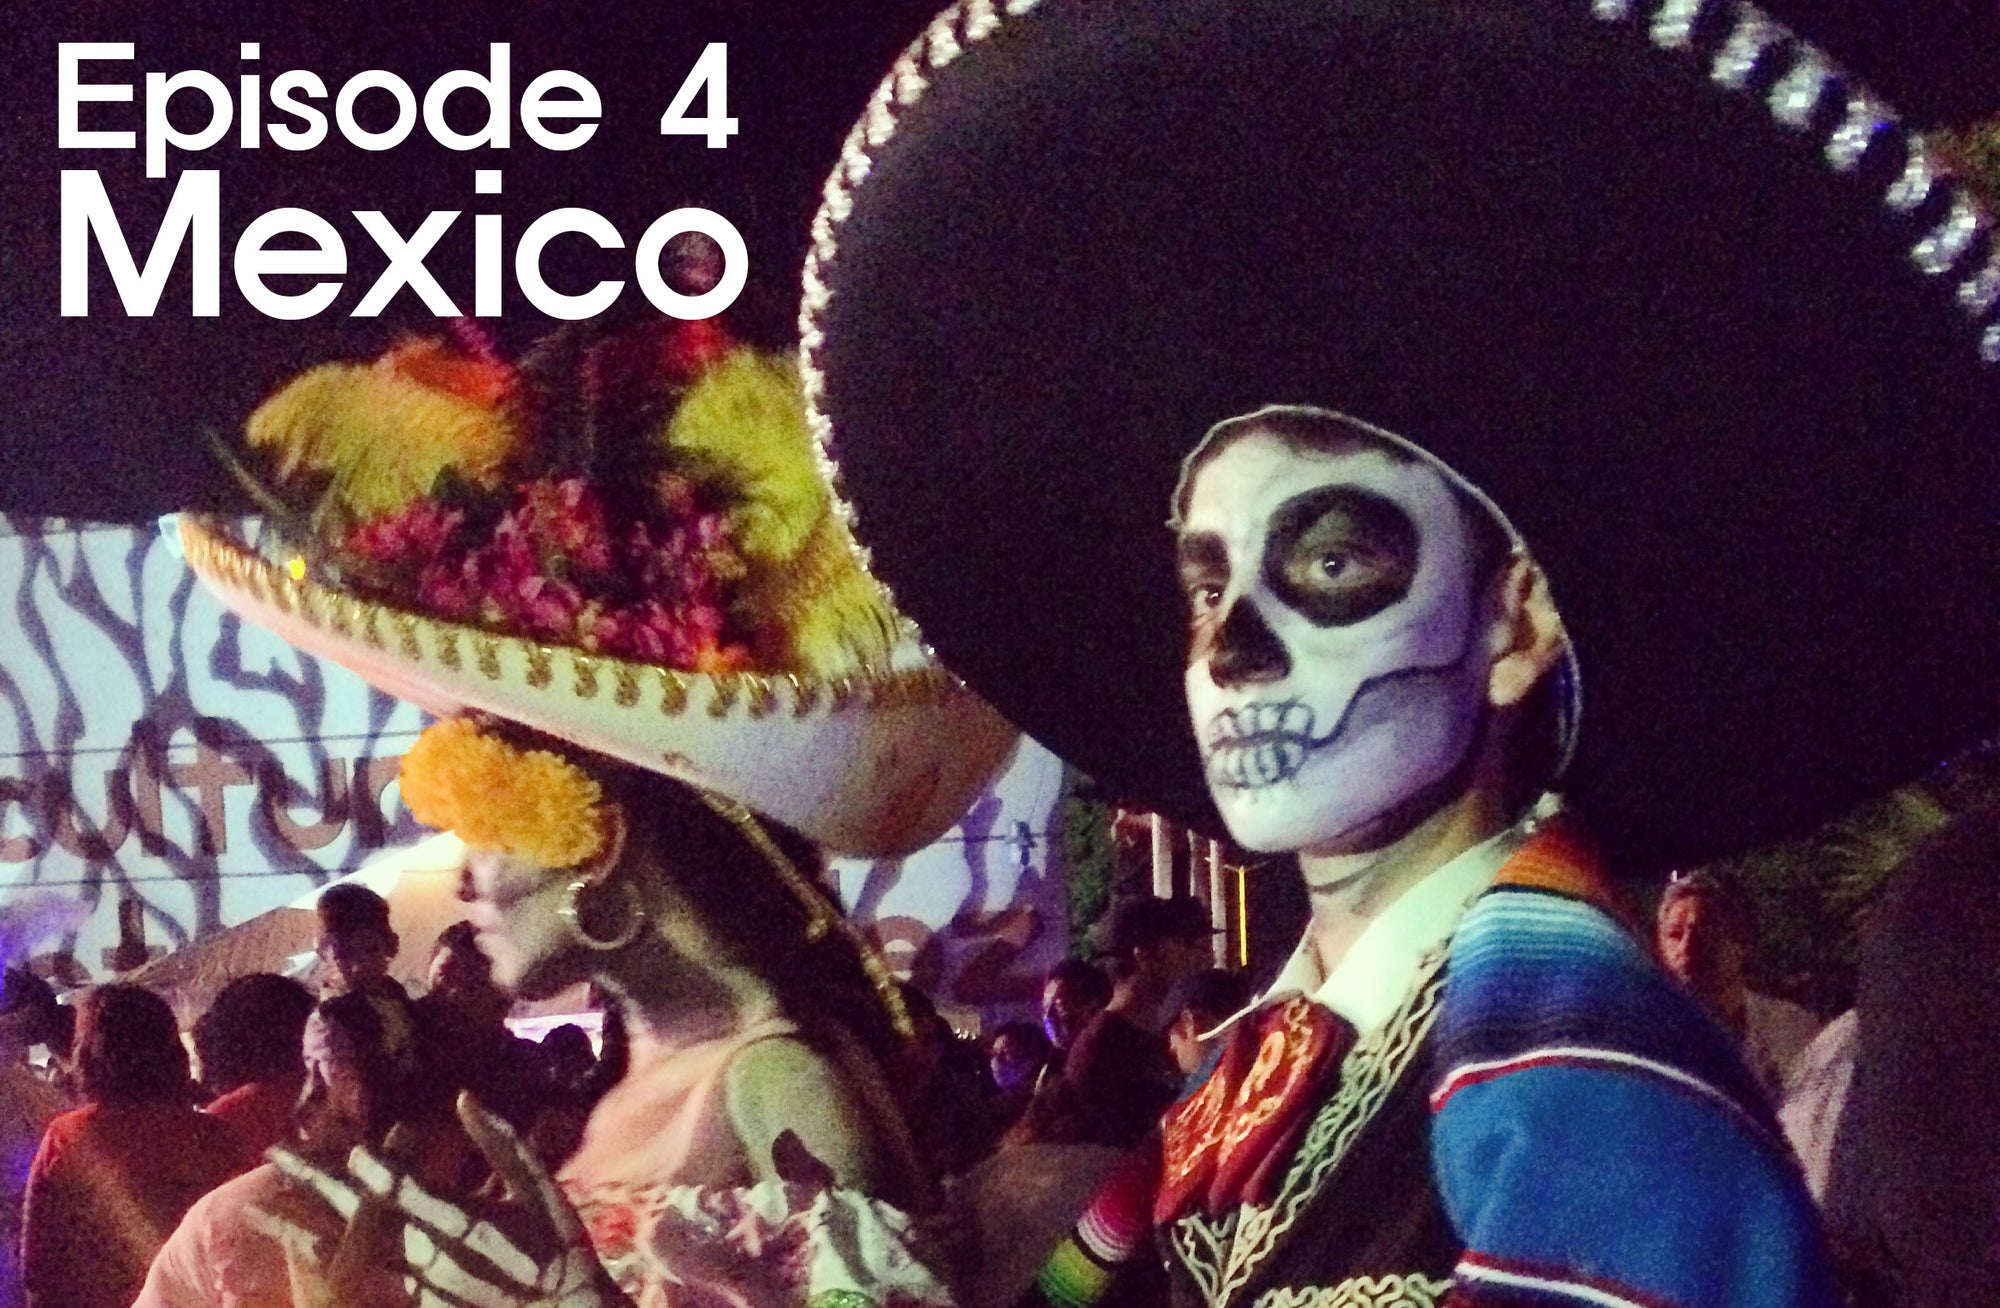 Vueltamerica - Episode 4 - Mexico!